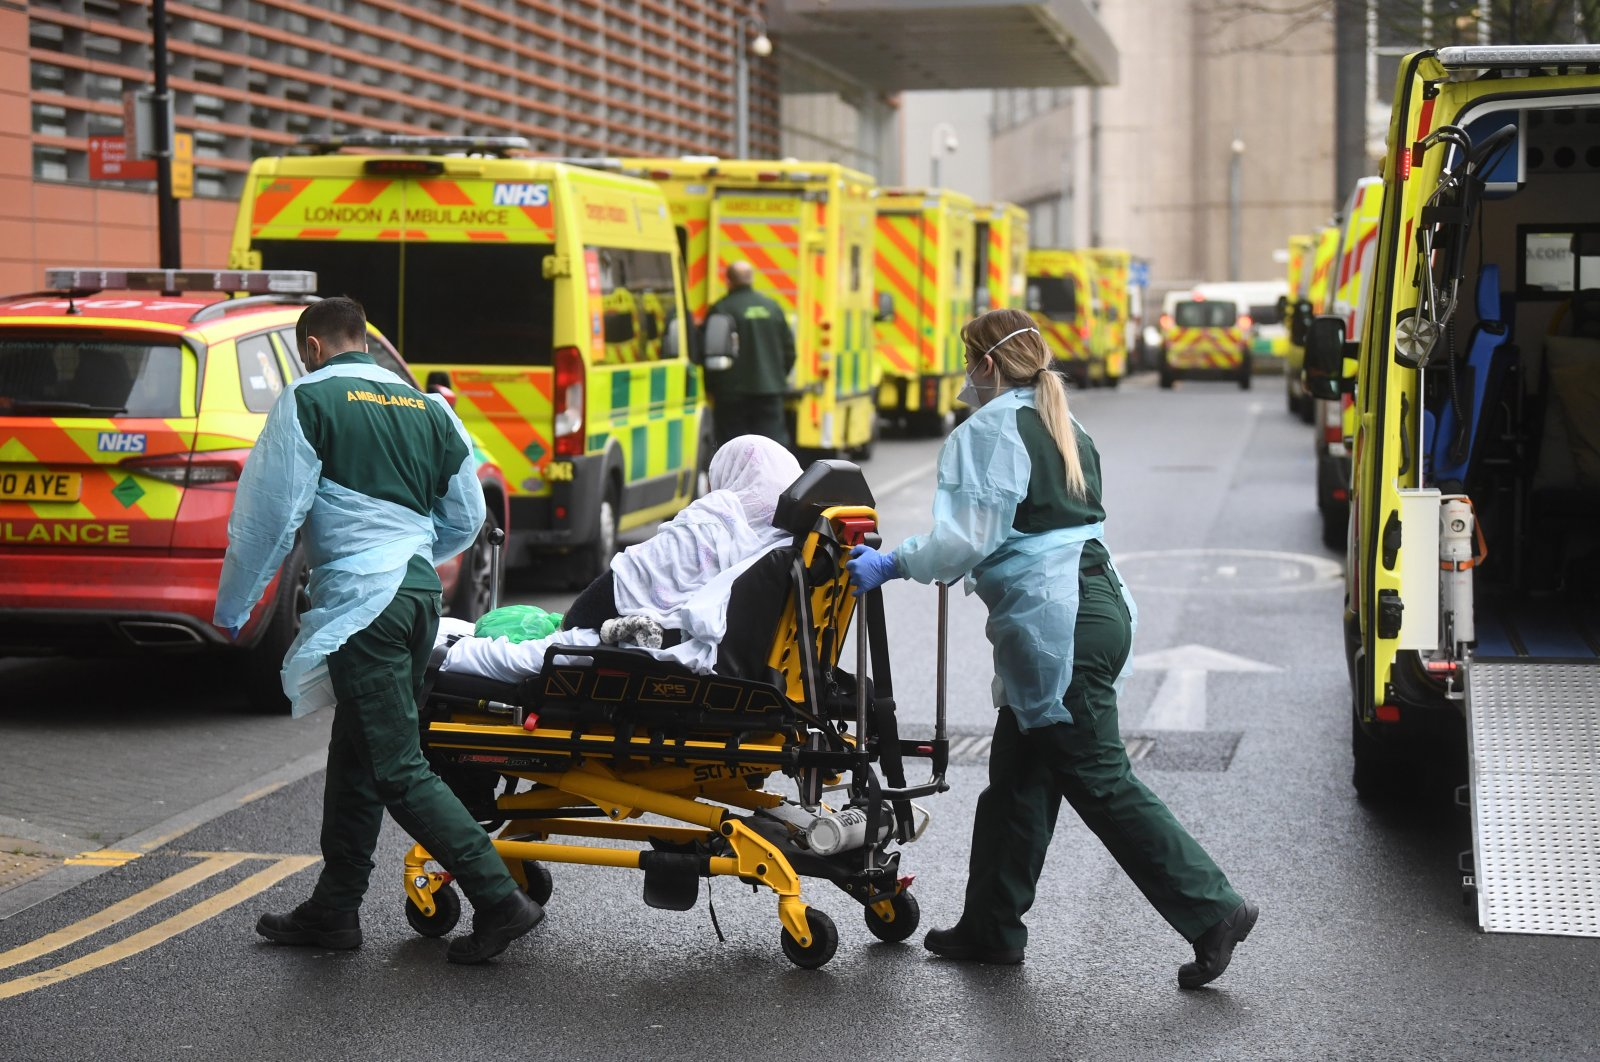 Medical workers transfer a patient from an ambulance to the Royal London Hospital in London, Britain, Jan. 12, 2021. (EPA Photo)